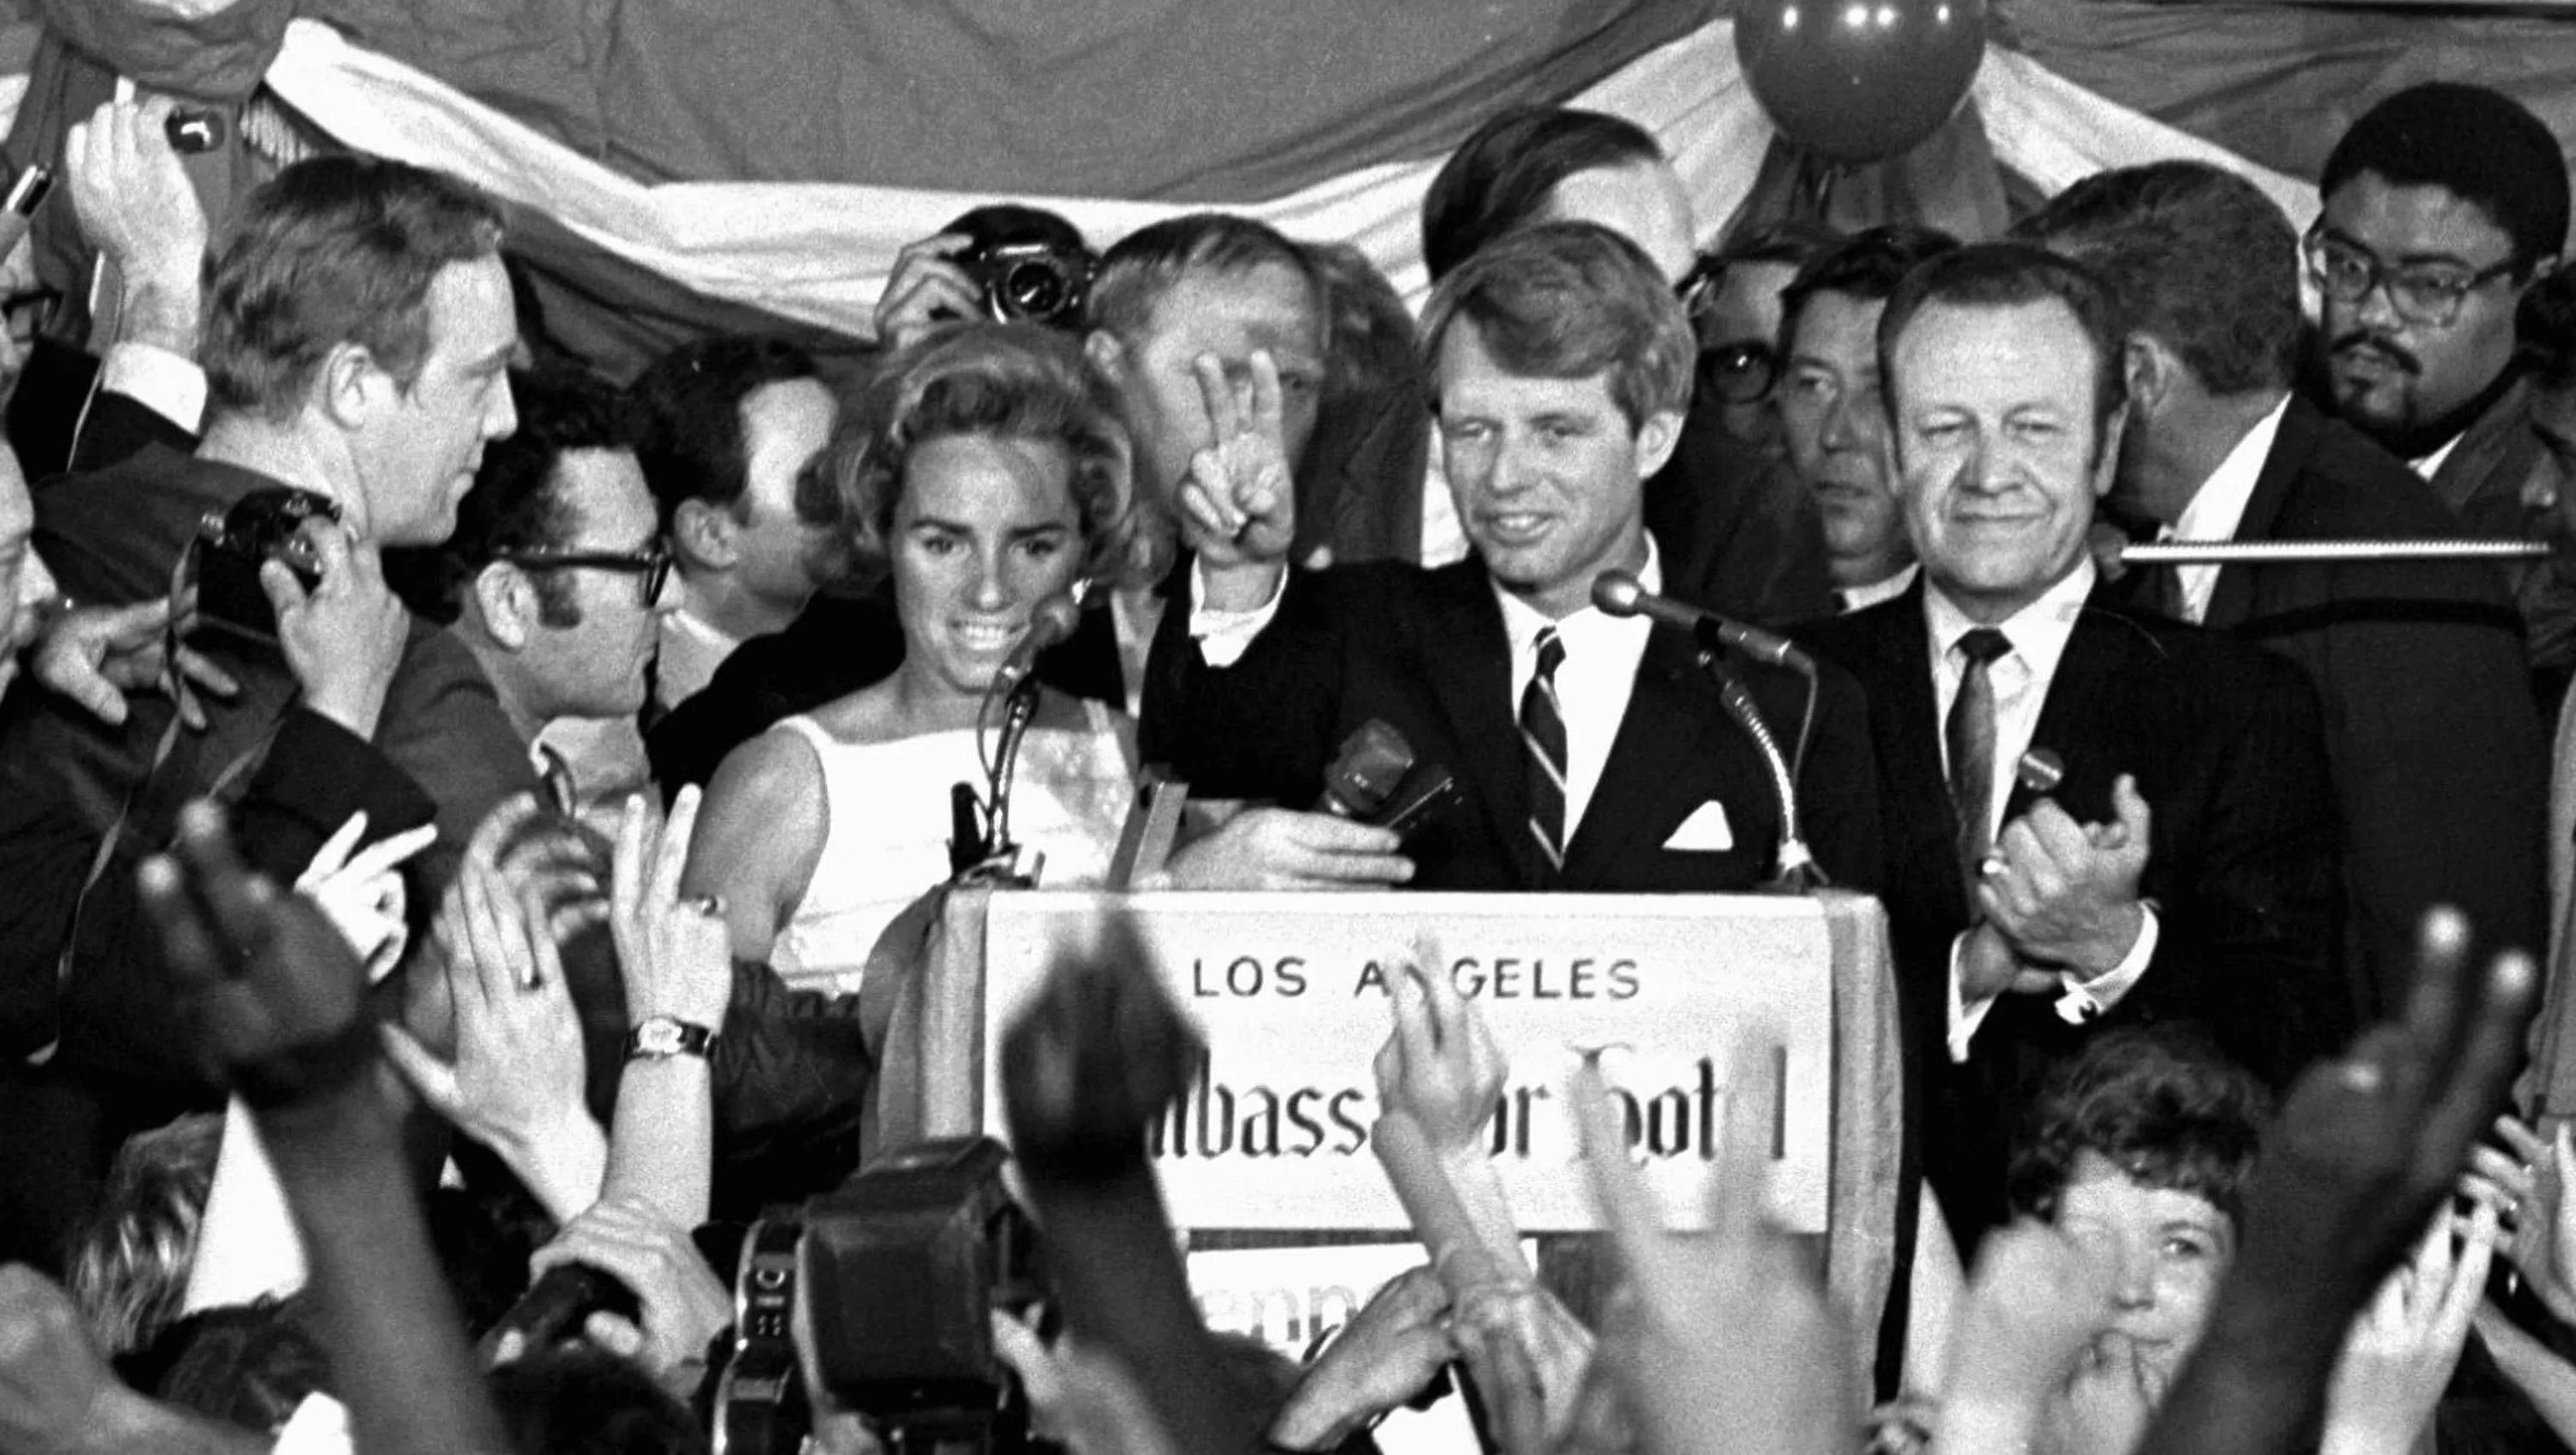 Bobby Kennedy's assassination changed history